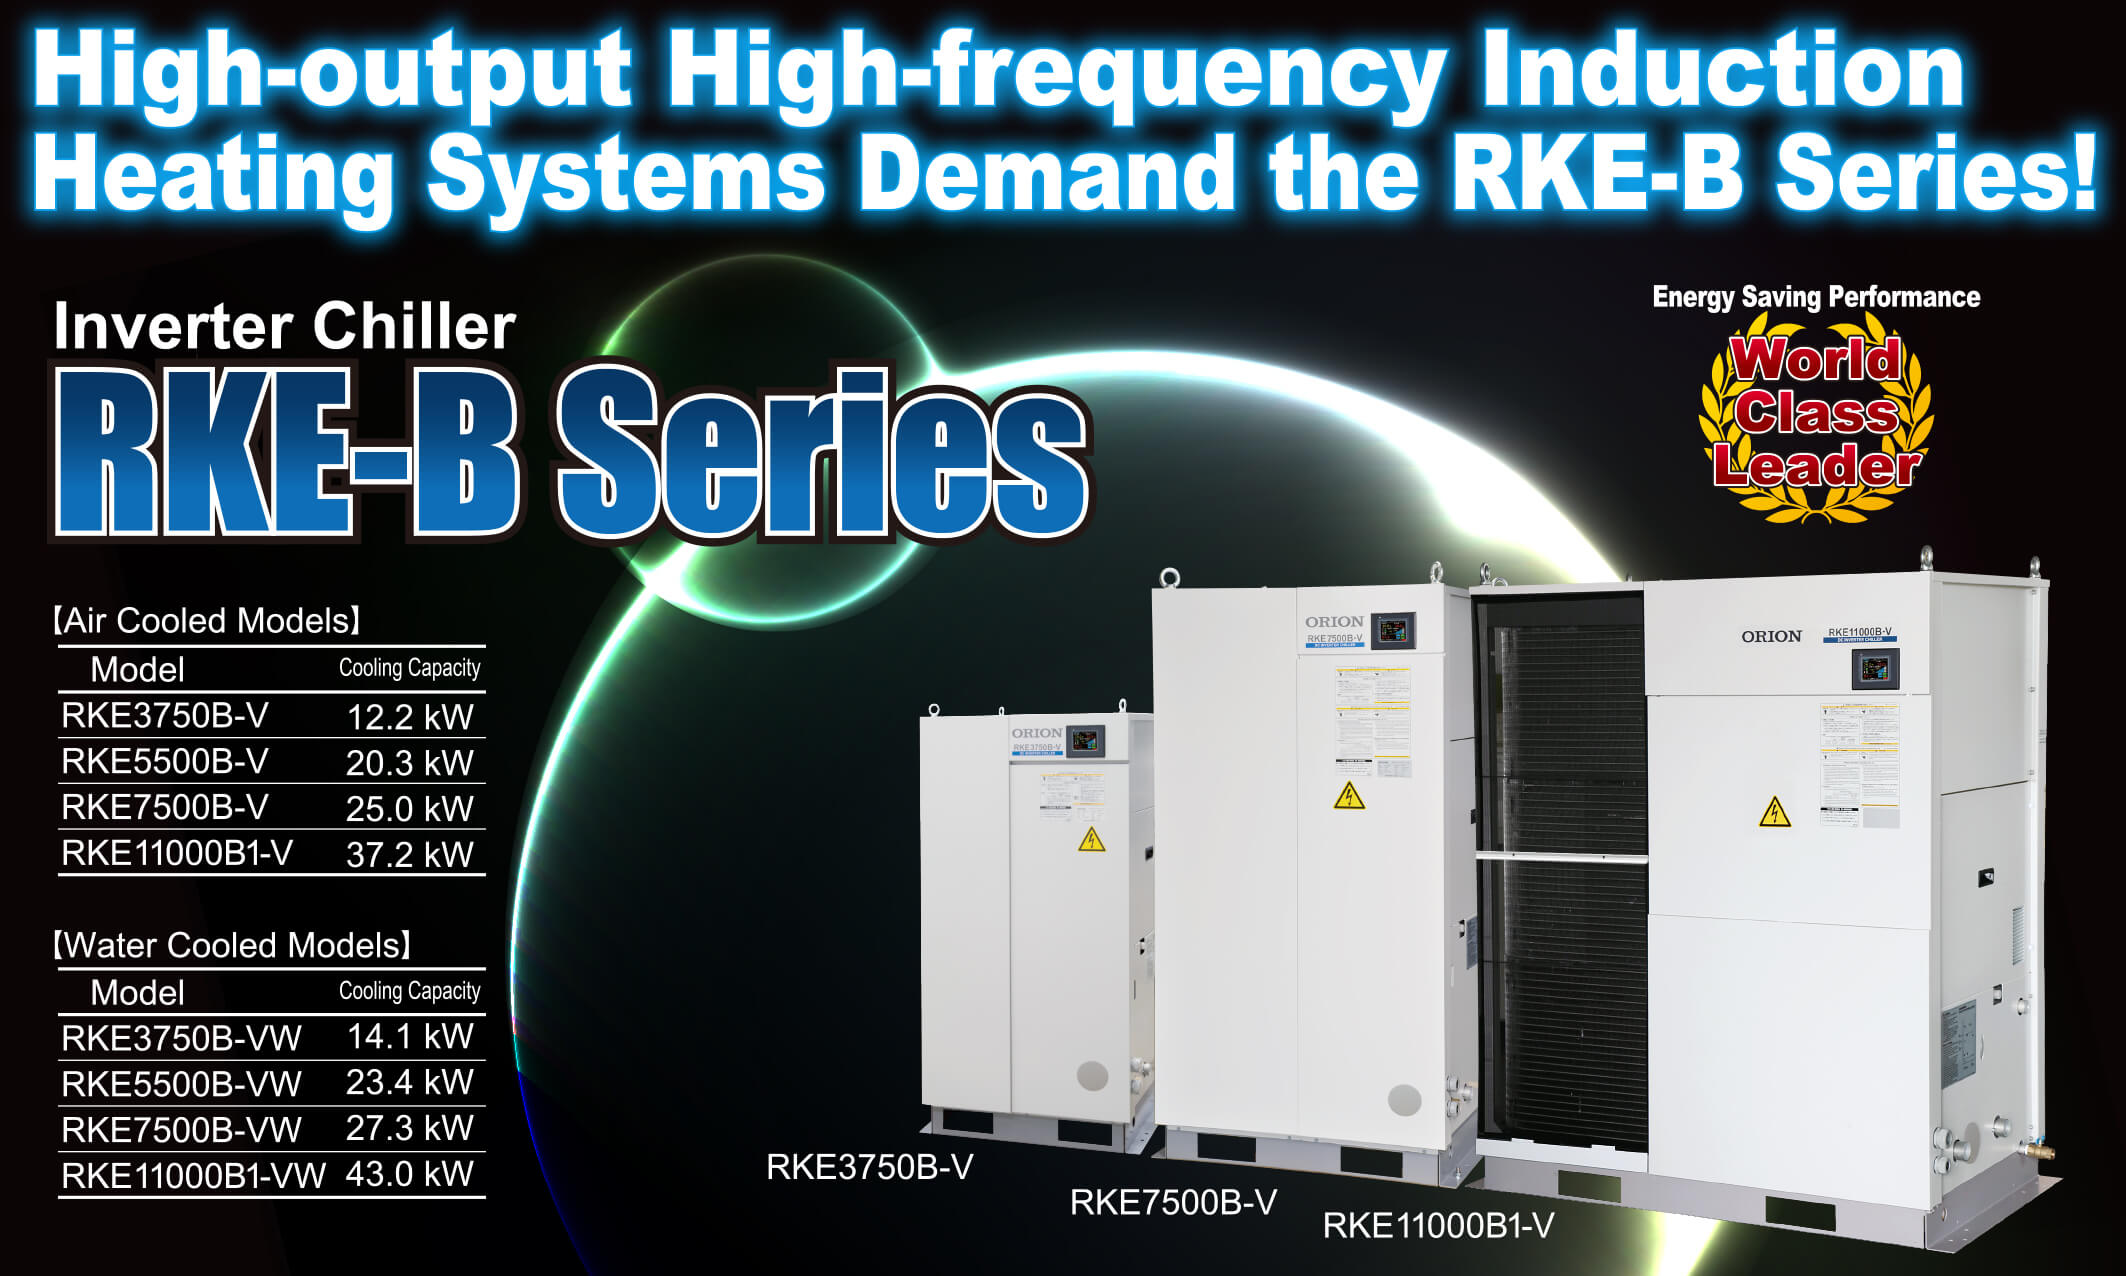 ORION RKE-B Series also Available for High-Output, High-Frequency Induction Heating Systems